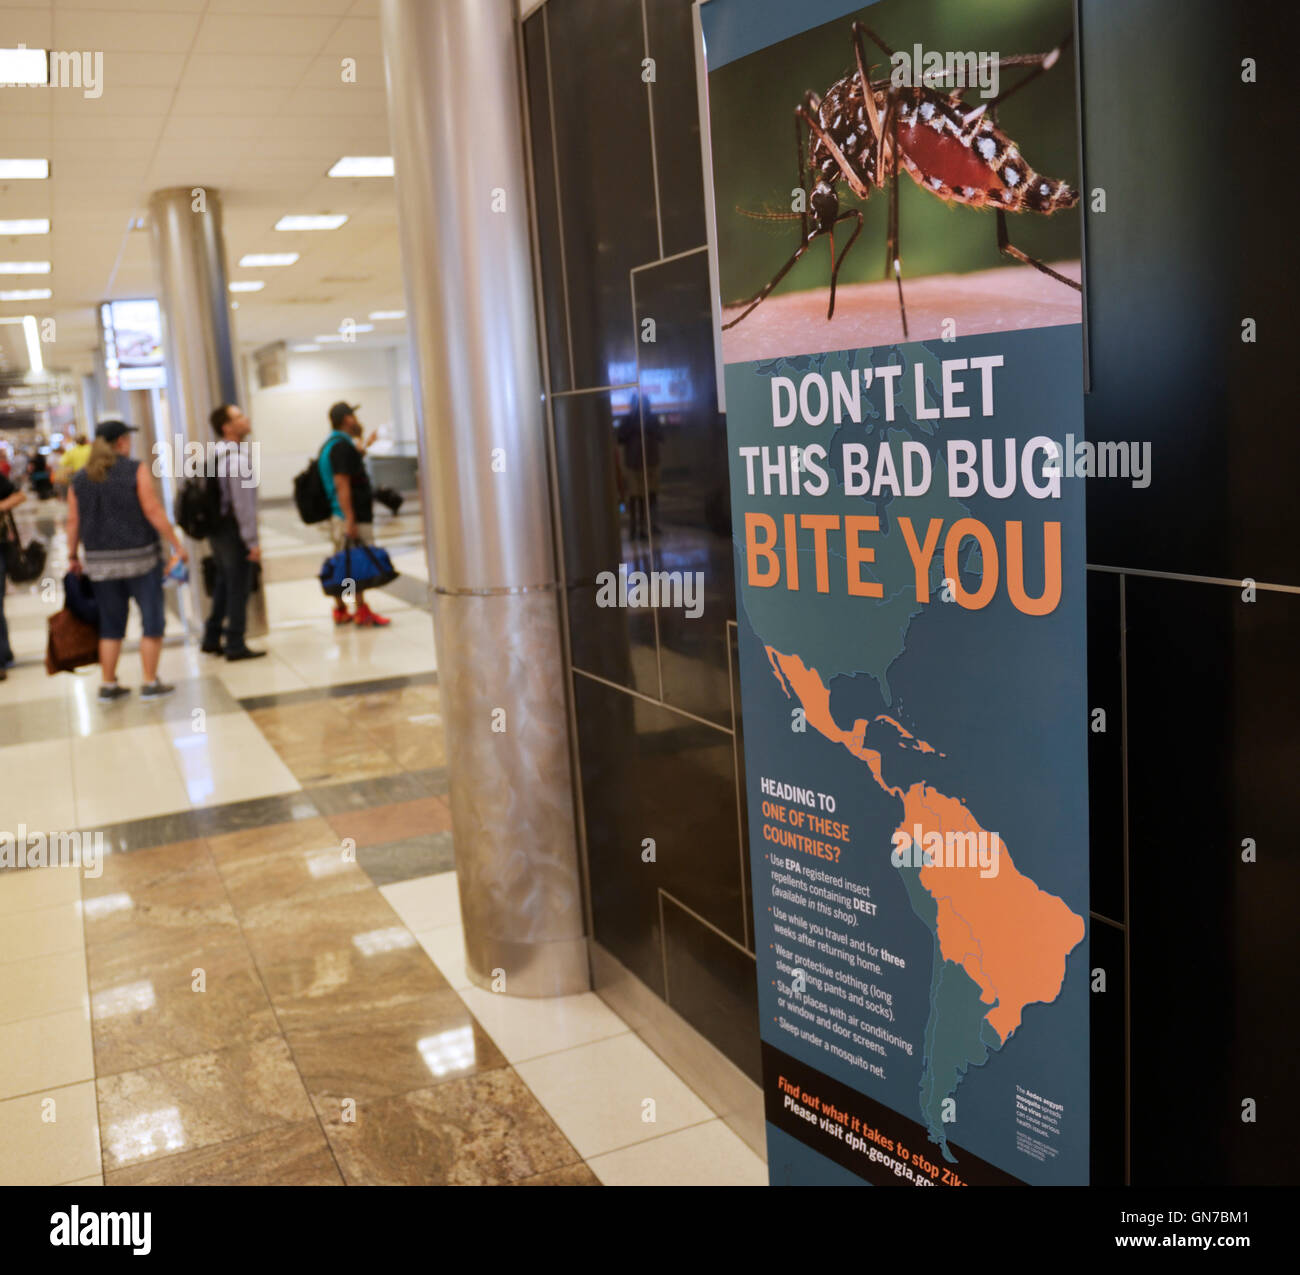 Sign in airport (Atlanta) warning travelers of the Aedes aegypti mosquito and Zika virus - Stock Image